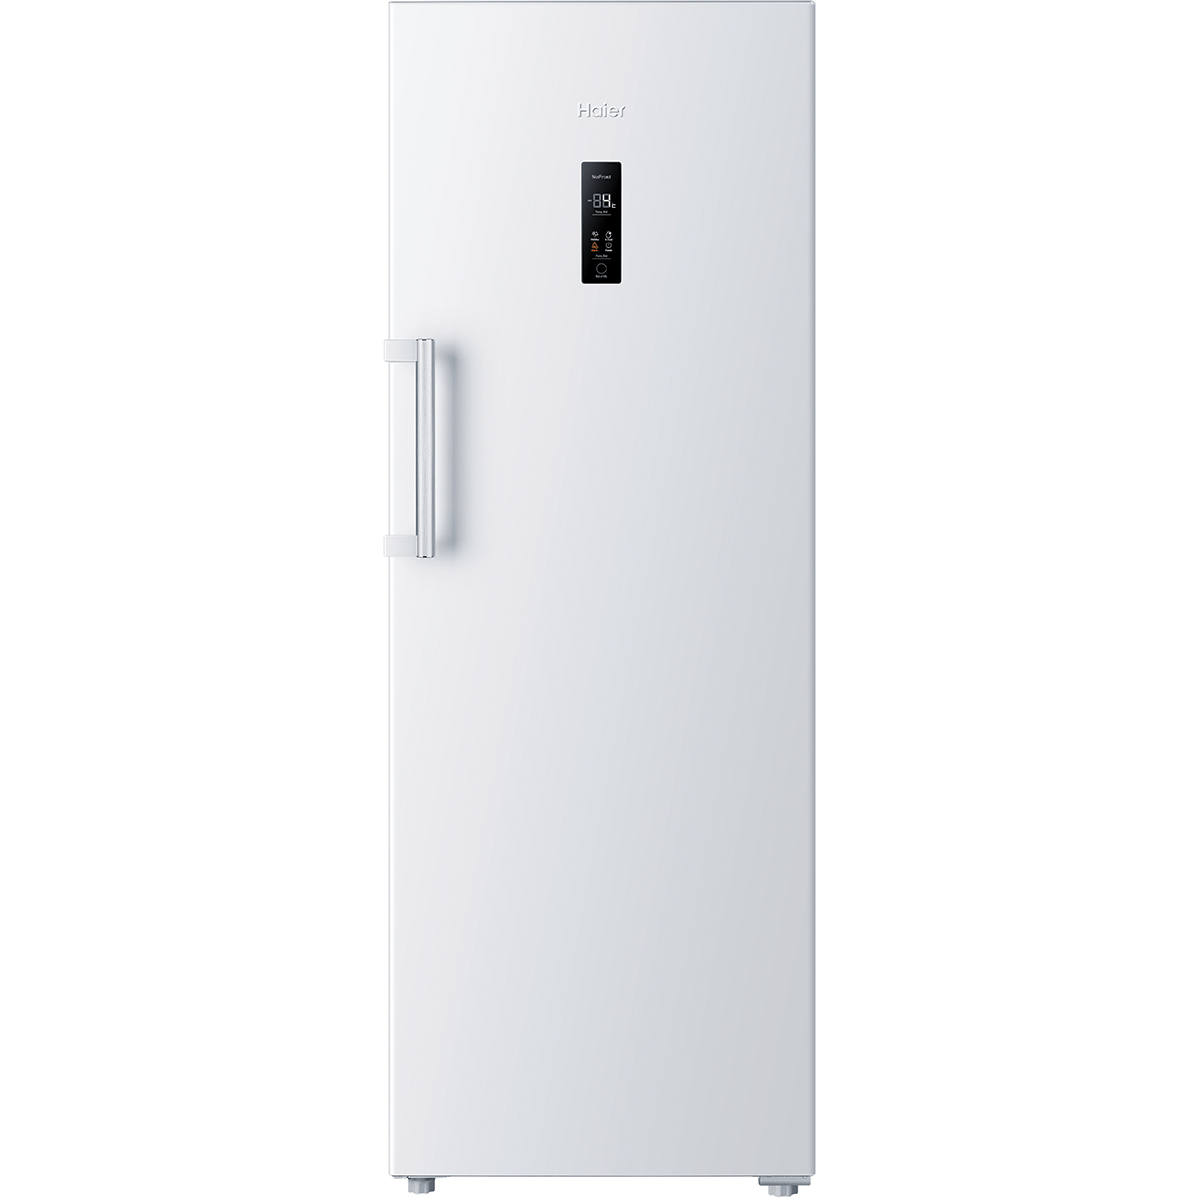 Haier HRF328W2 328L Upright Fridge